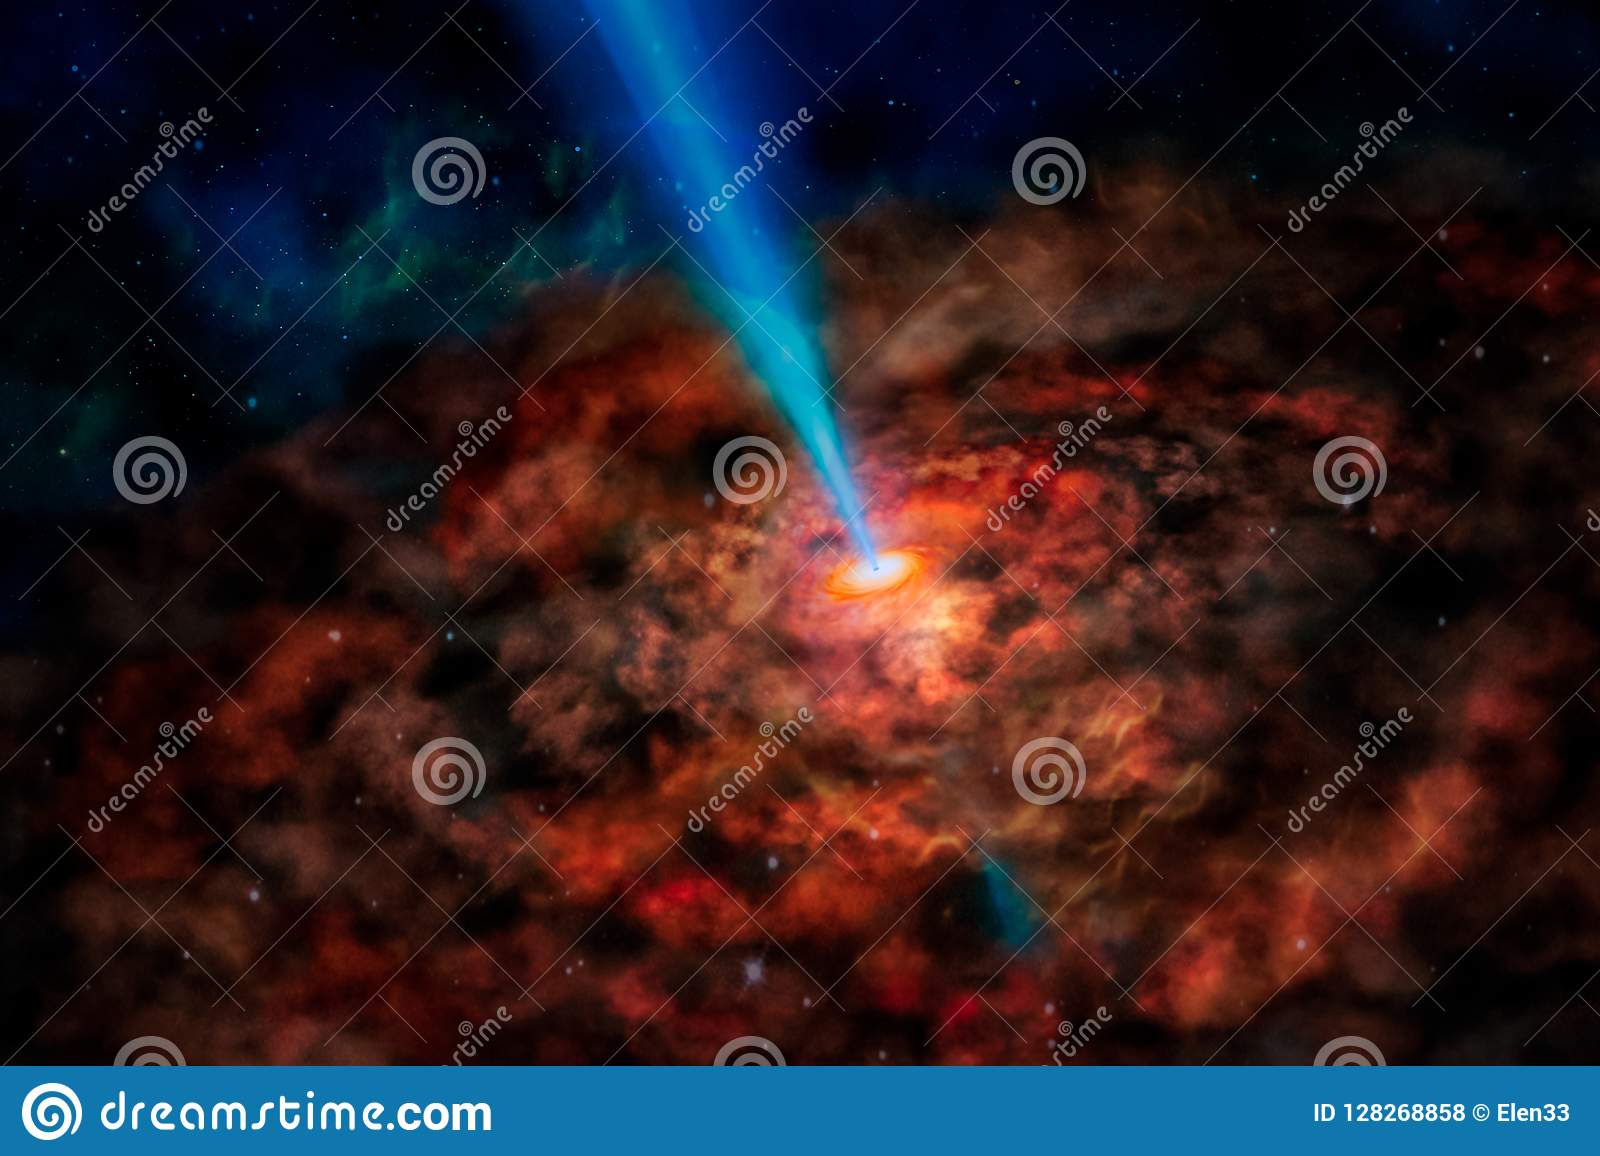 Fantasy alien galaxy with red glowing spiral clouds and sun beam.